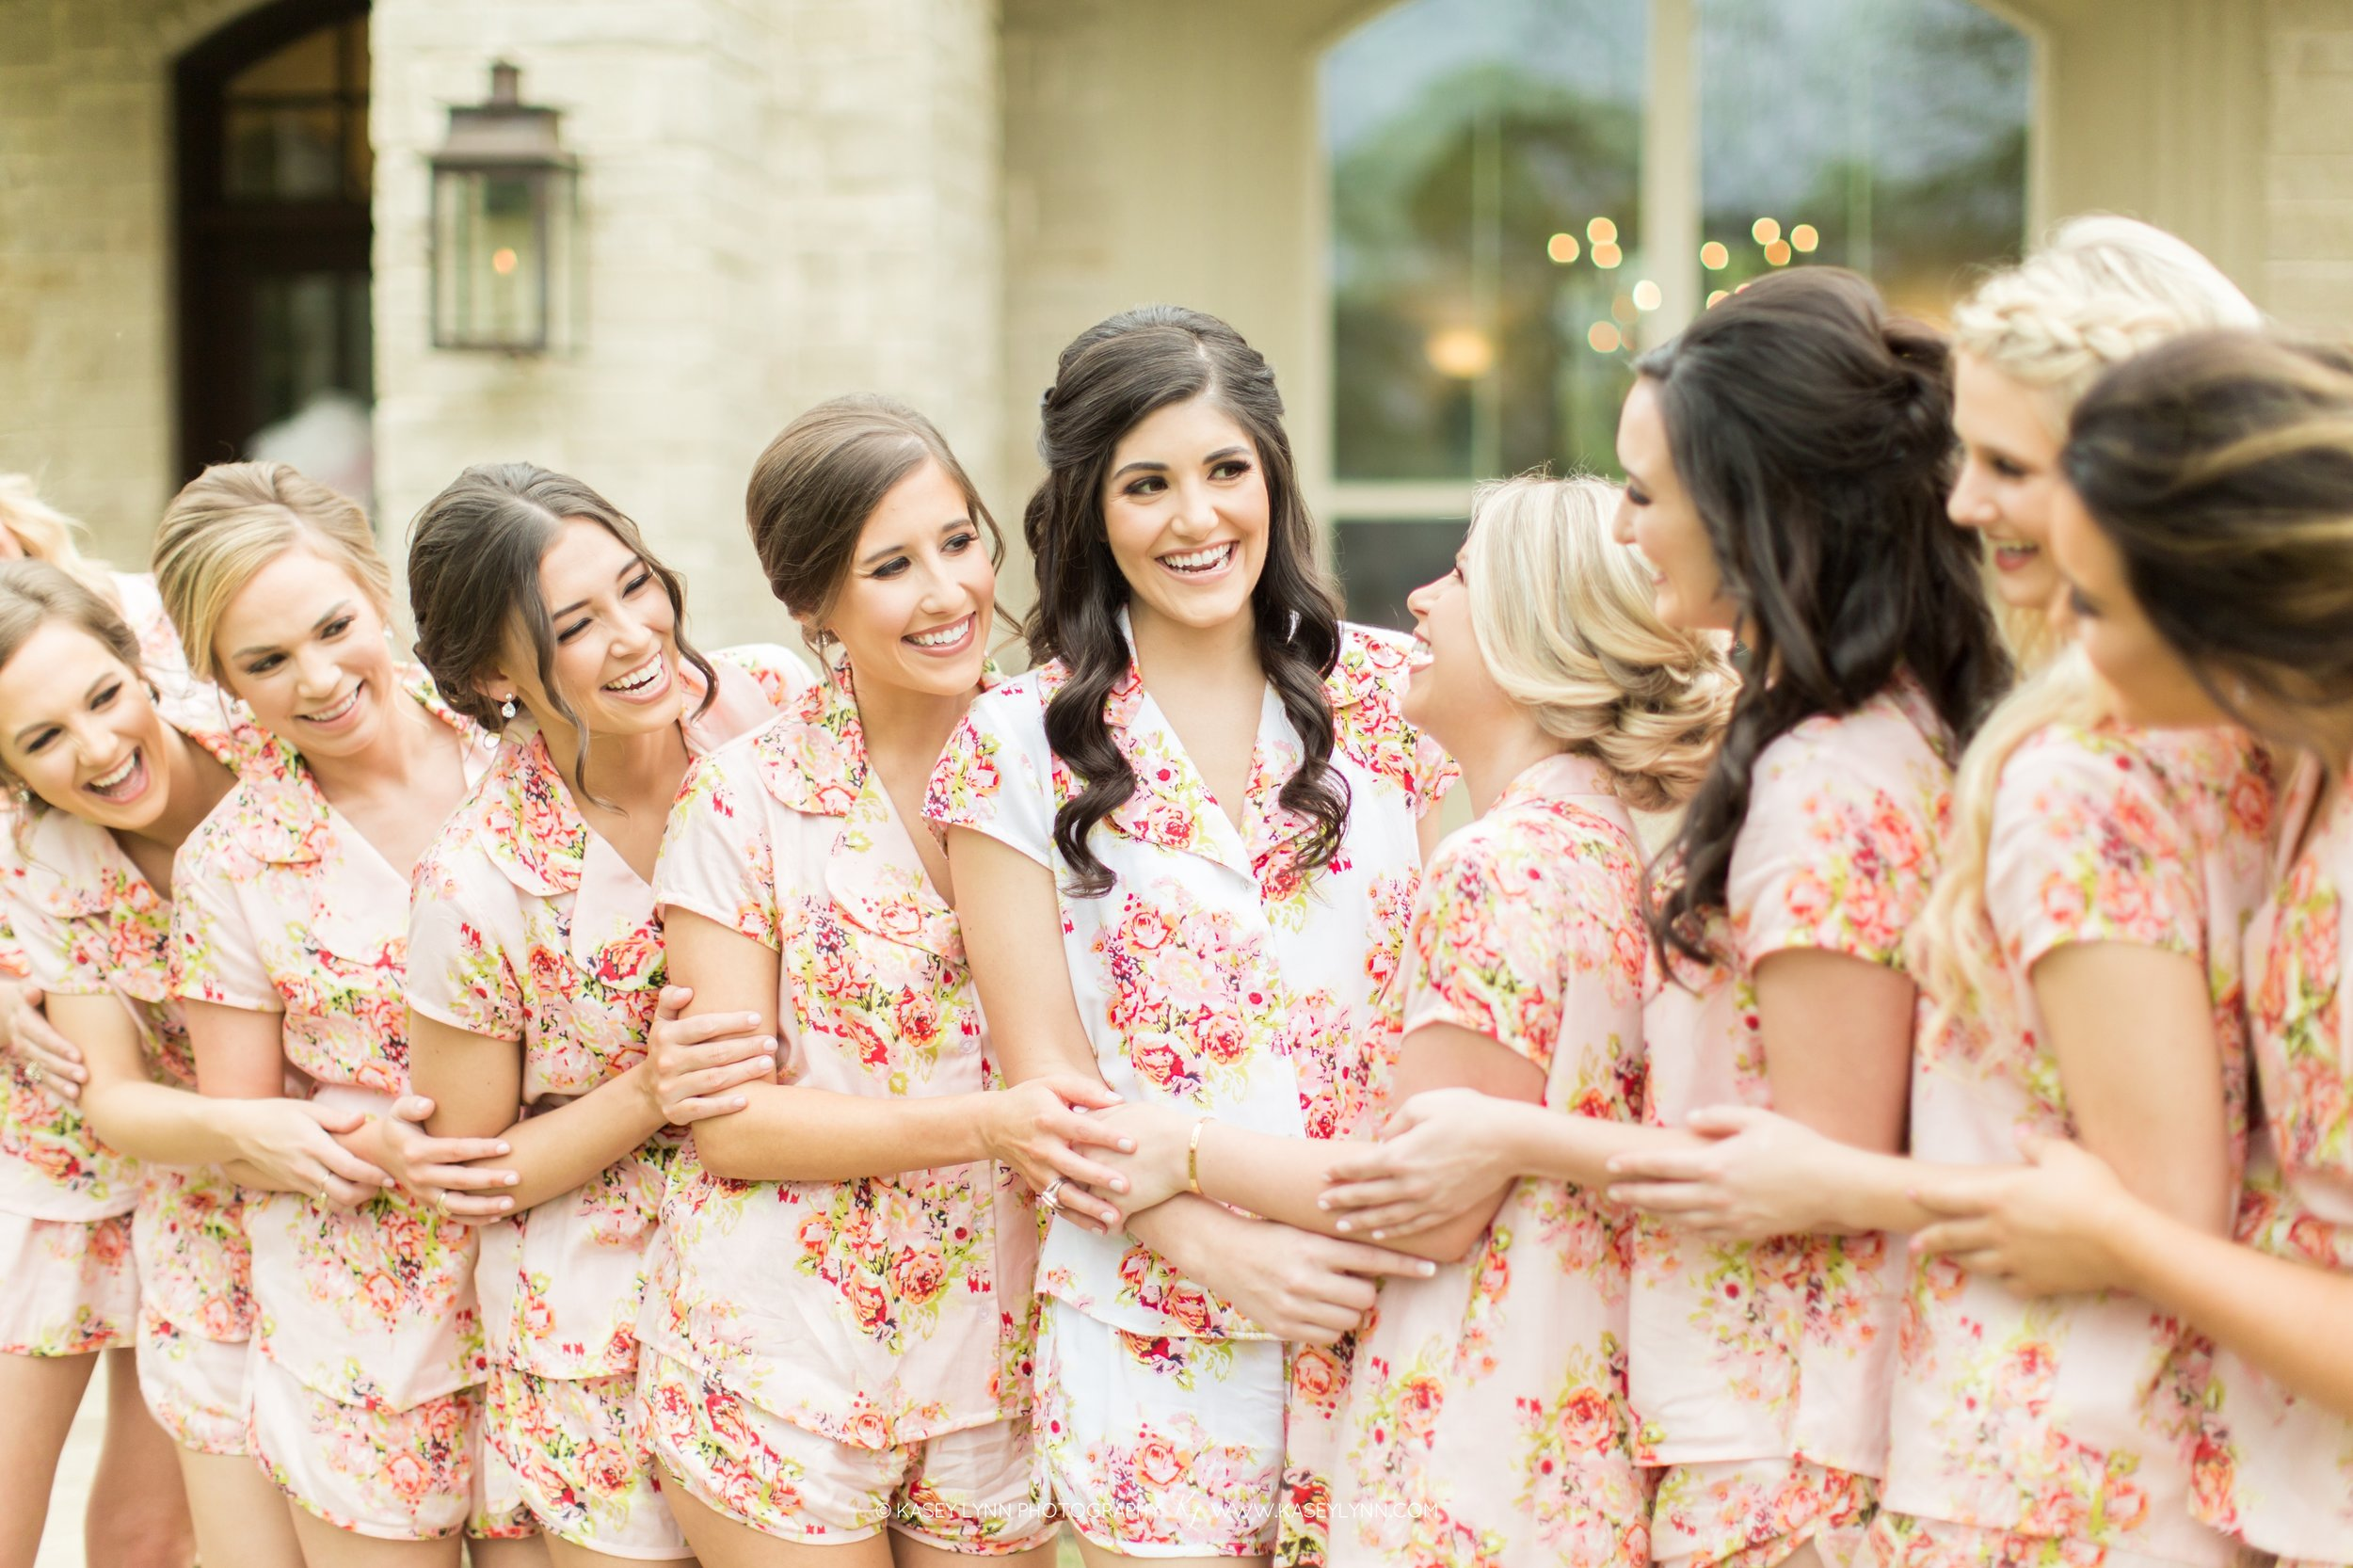 Lauren & Grant | Houston, Texas | The Woodlands Country Club  Photographer: Kasey Lynn Photo